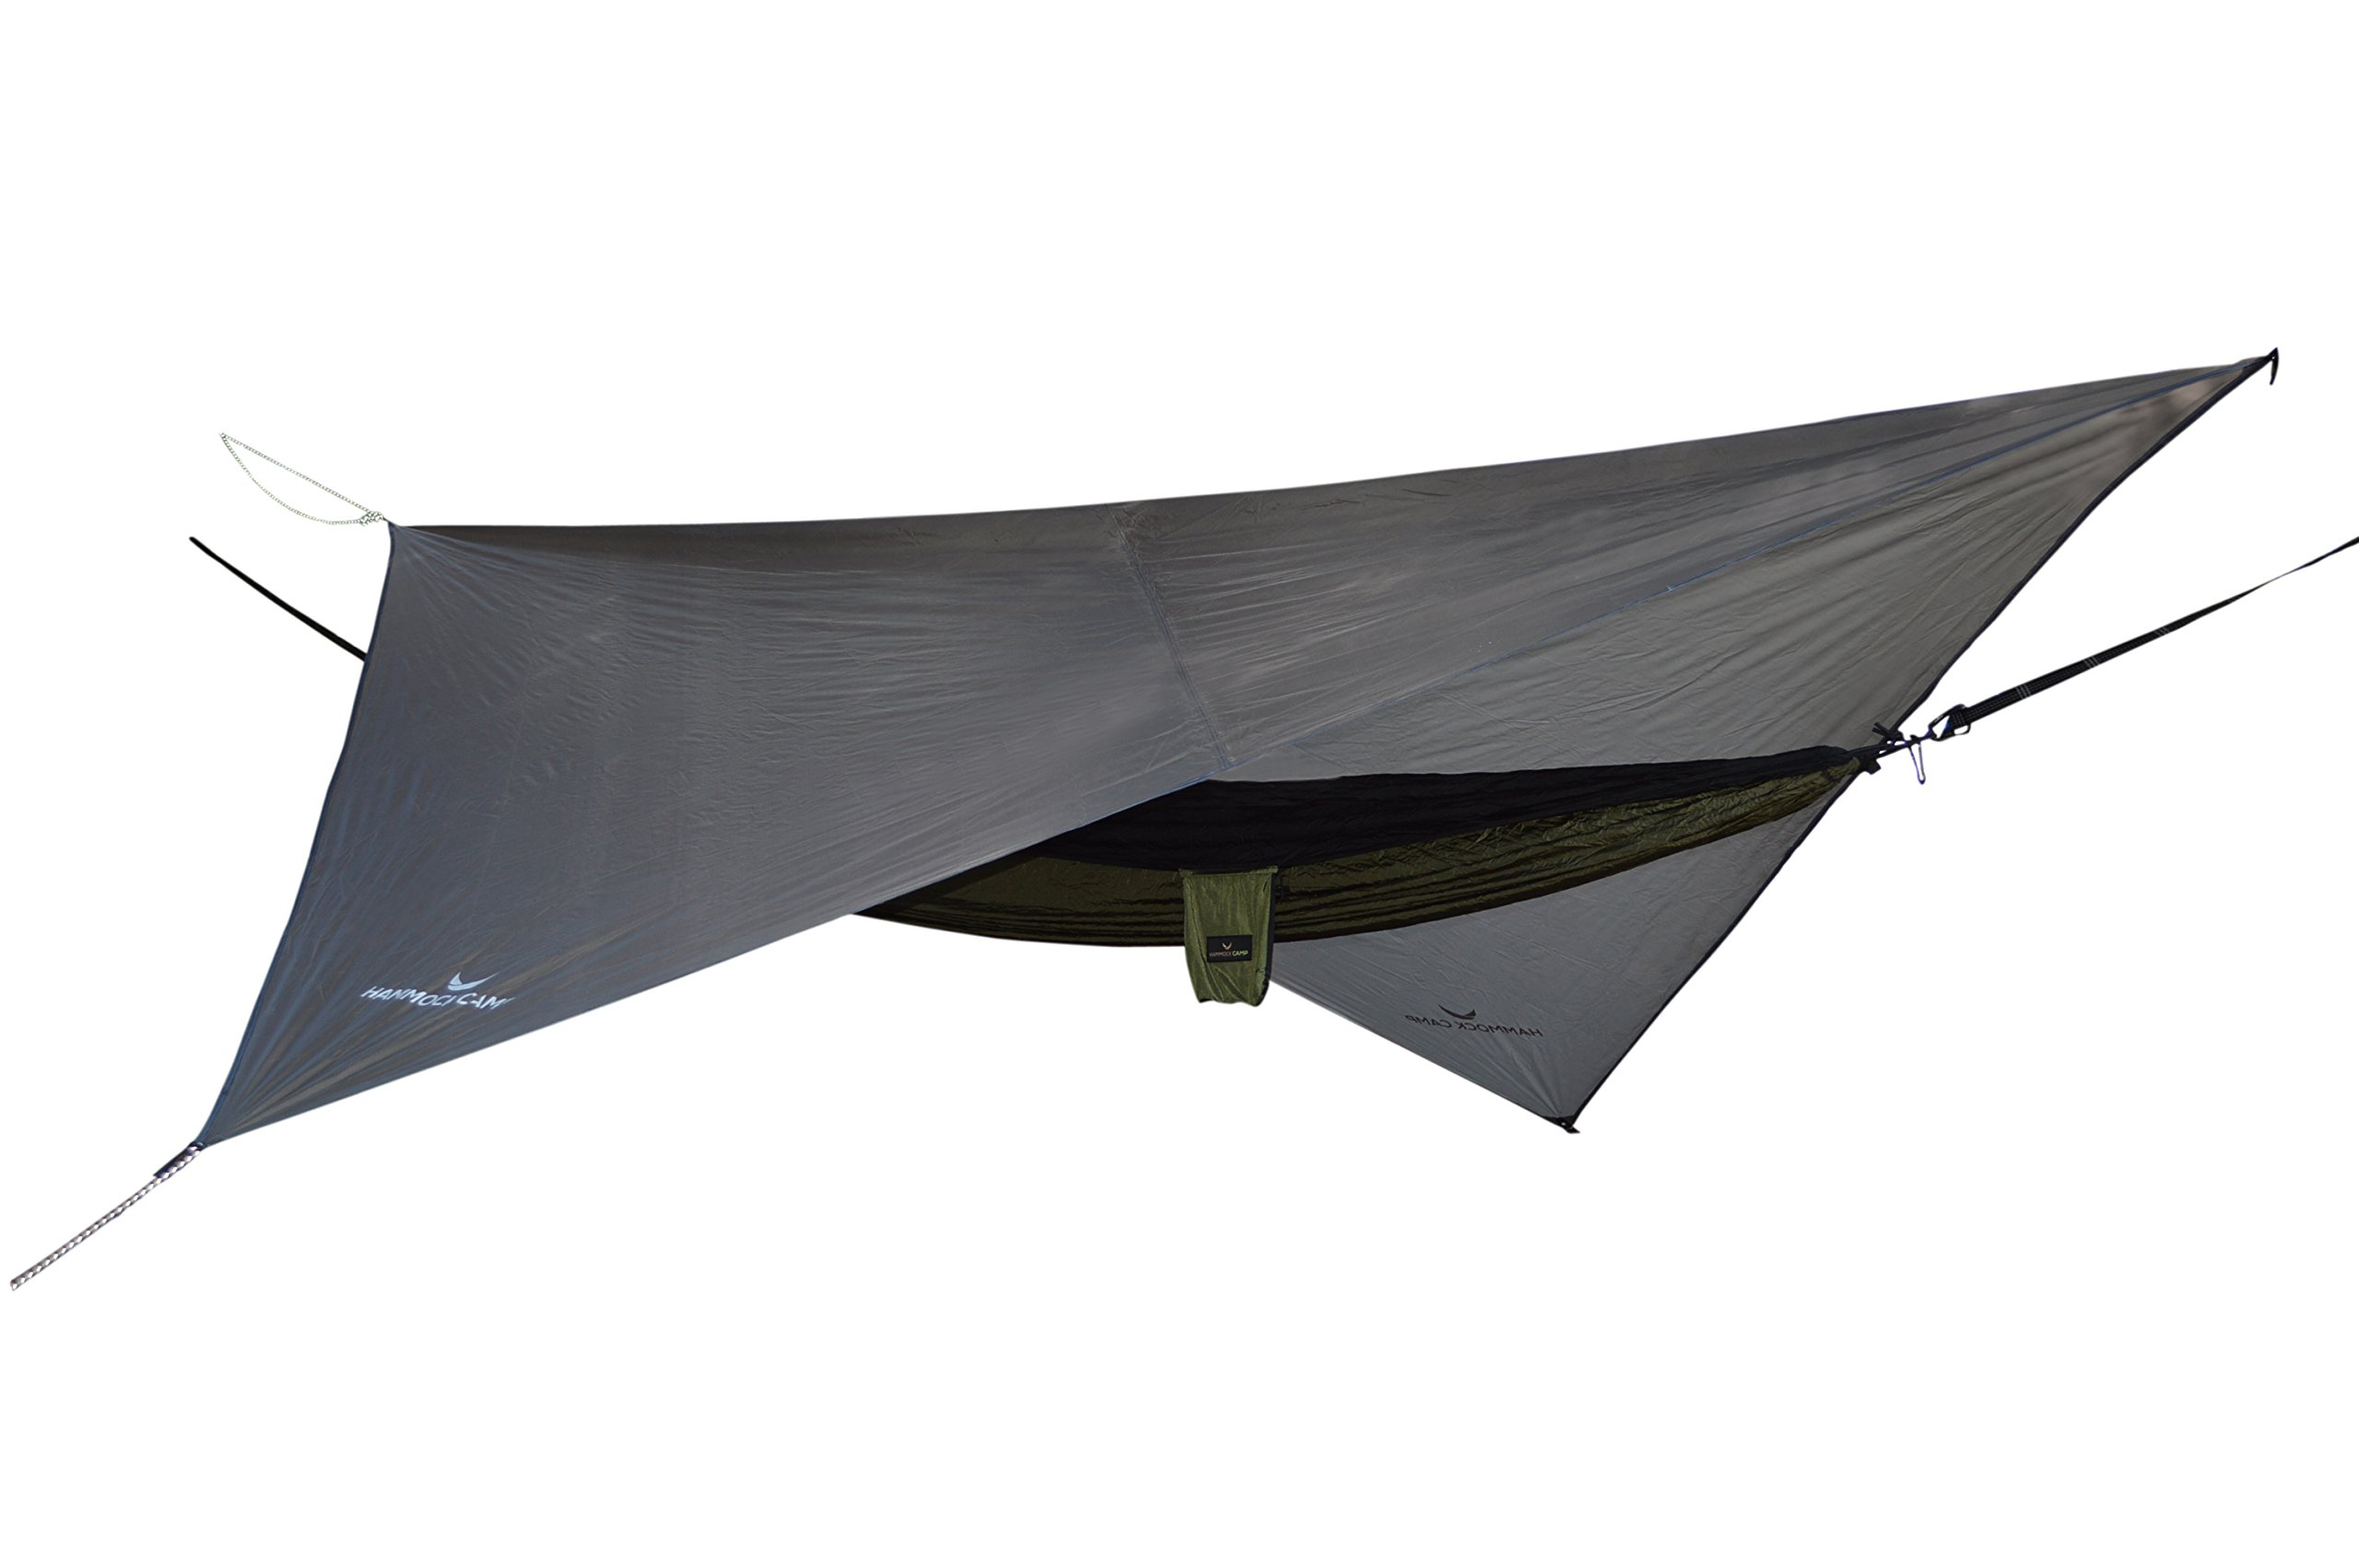 Hammock Camp - Easy Set Up Portable Hammock Fly Tarp Shelter - Quality Lightweight Waterproof Tent Polyester - Perfect Cover While Backpacking Outdoors Camping and Hiking - Gray by Hammock Camp